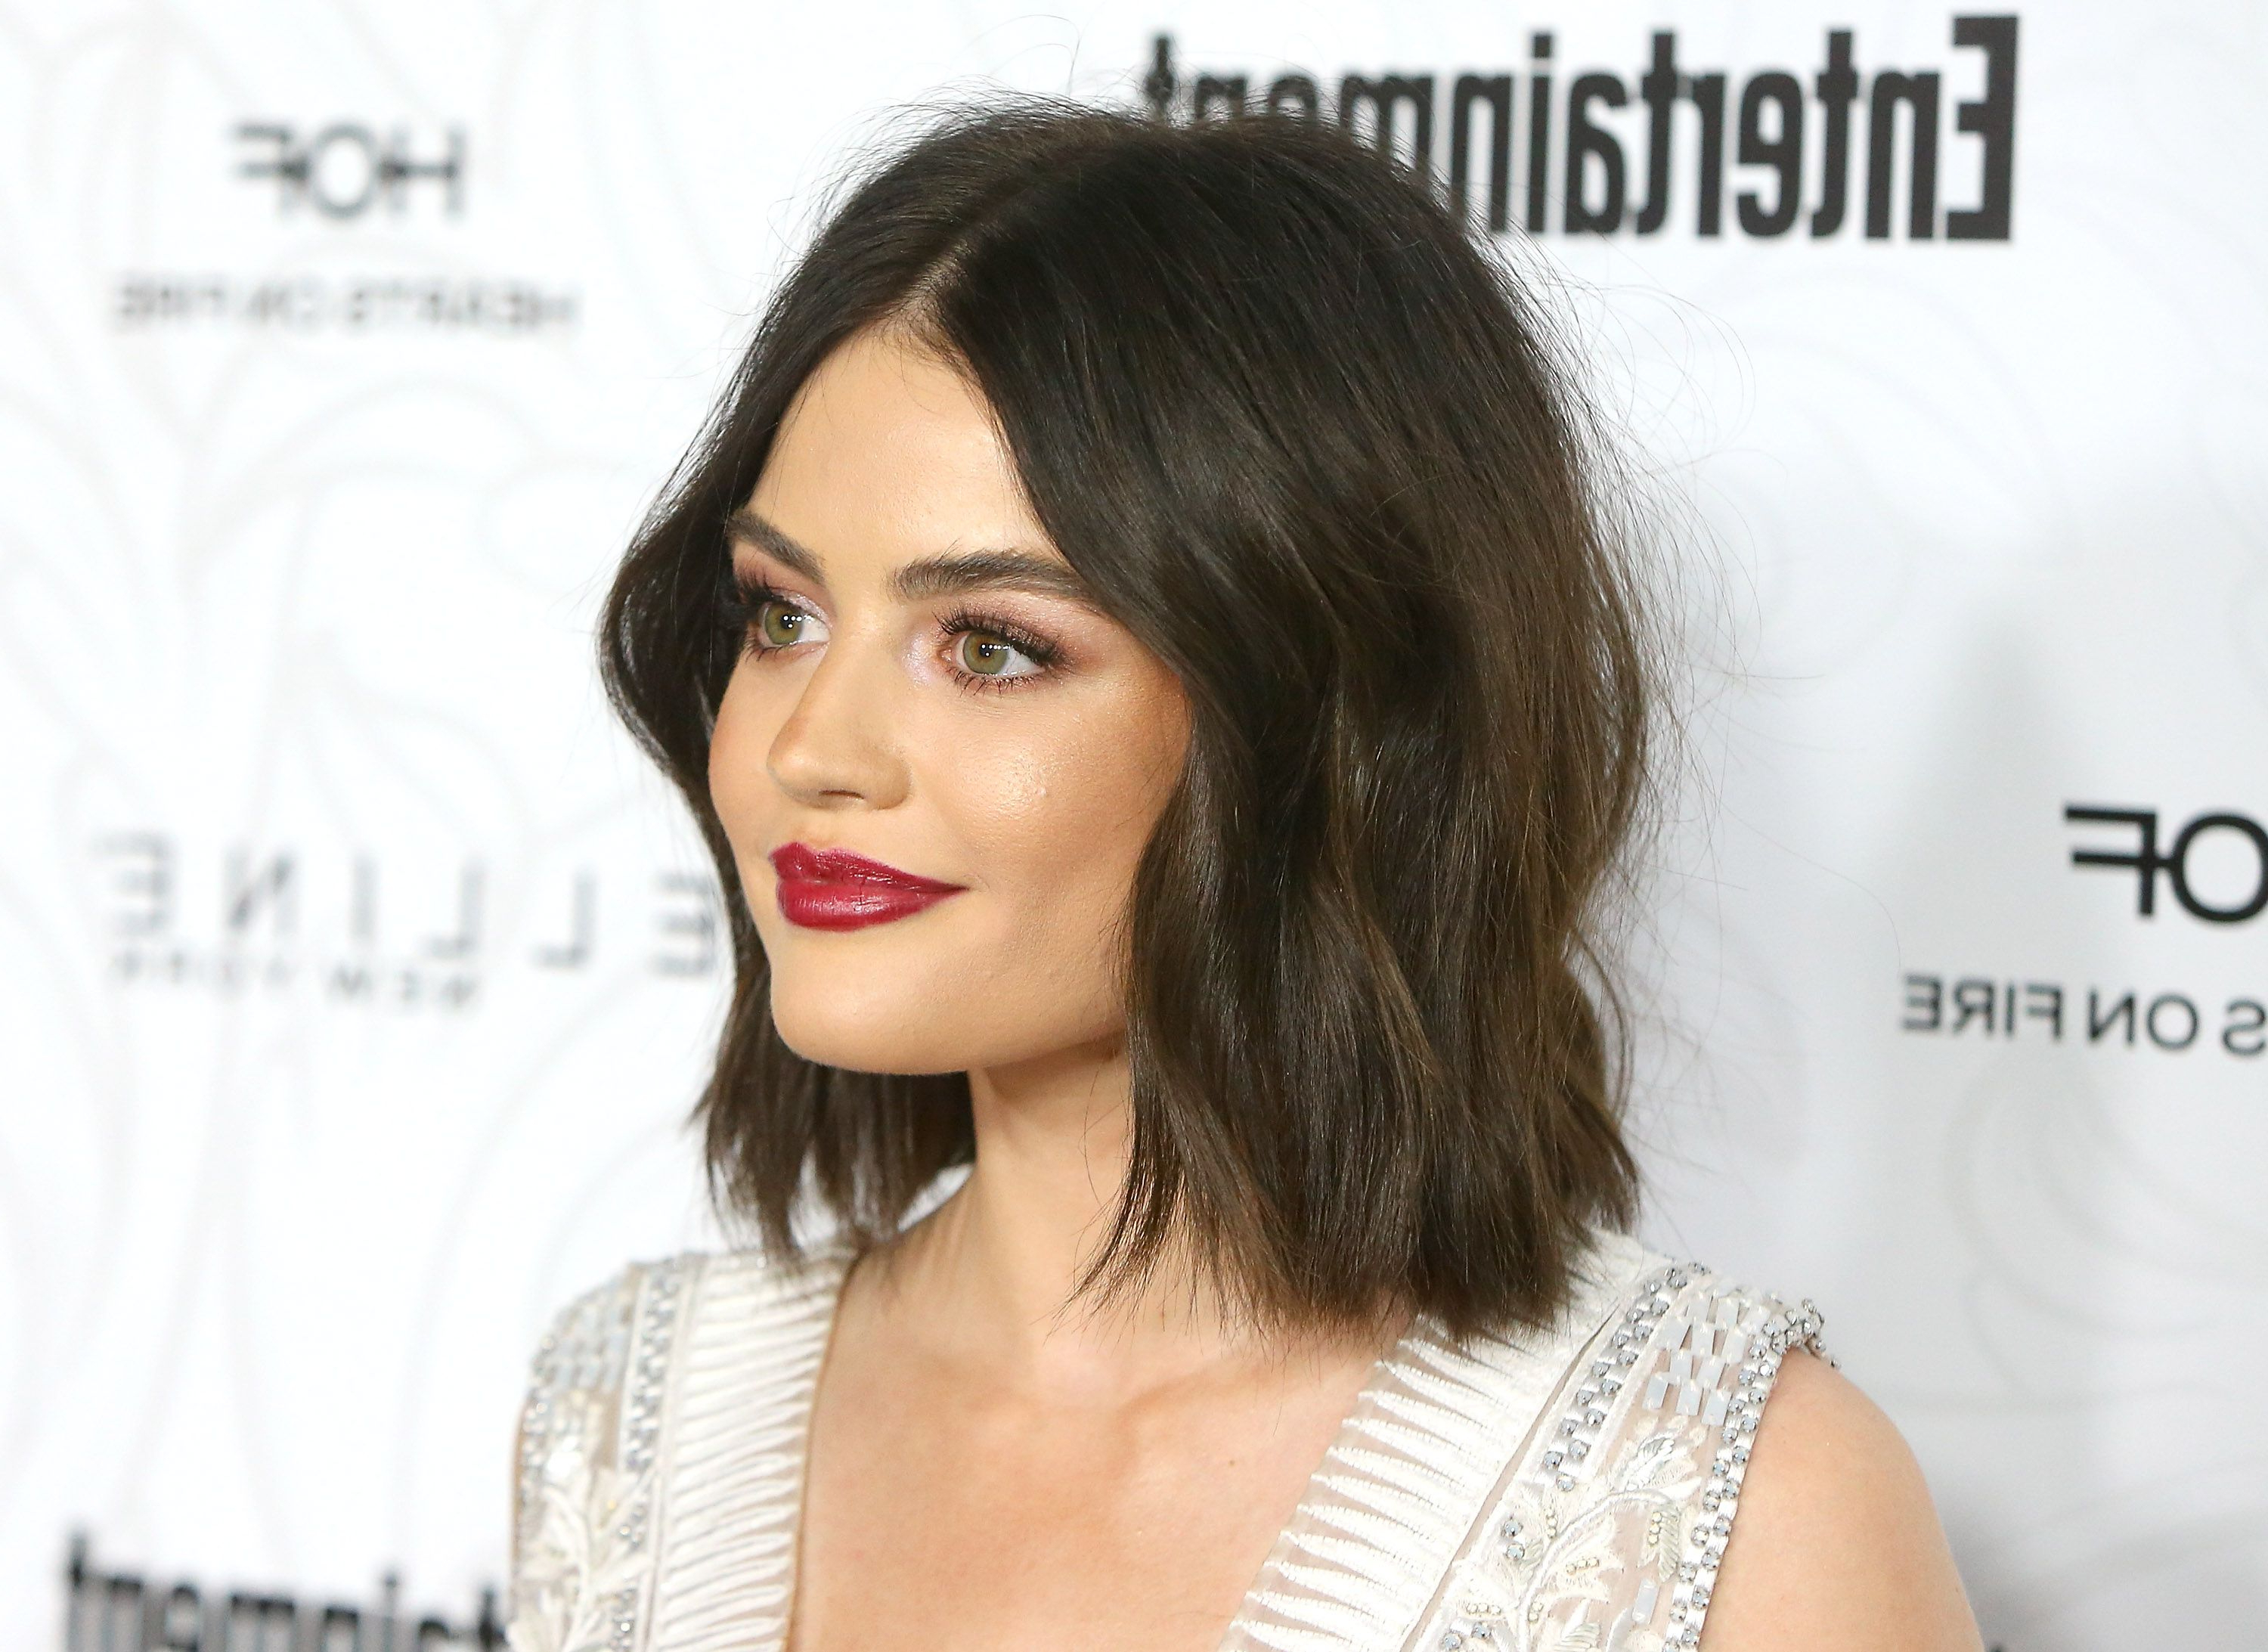 Bob Hairstyles For 2018 – 53 Short Haircut Trends To Try Now Within Short Hairstyles For Square Faces And Thick Hair (View 15 of 25)